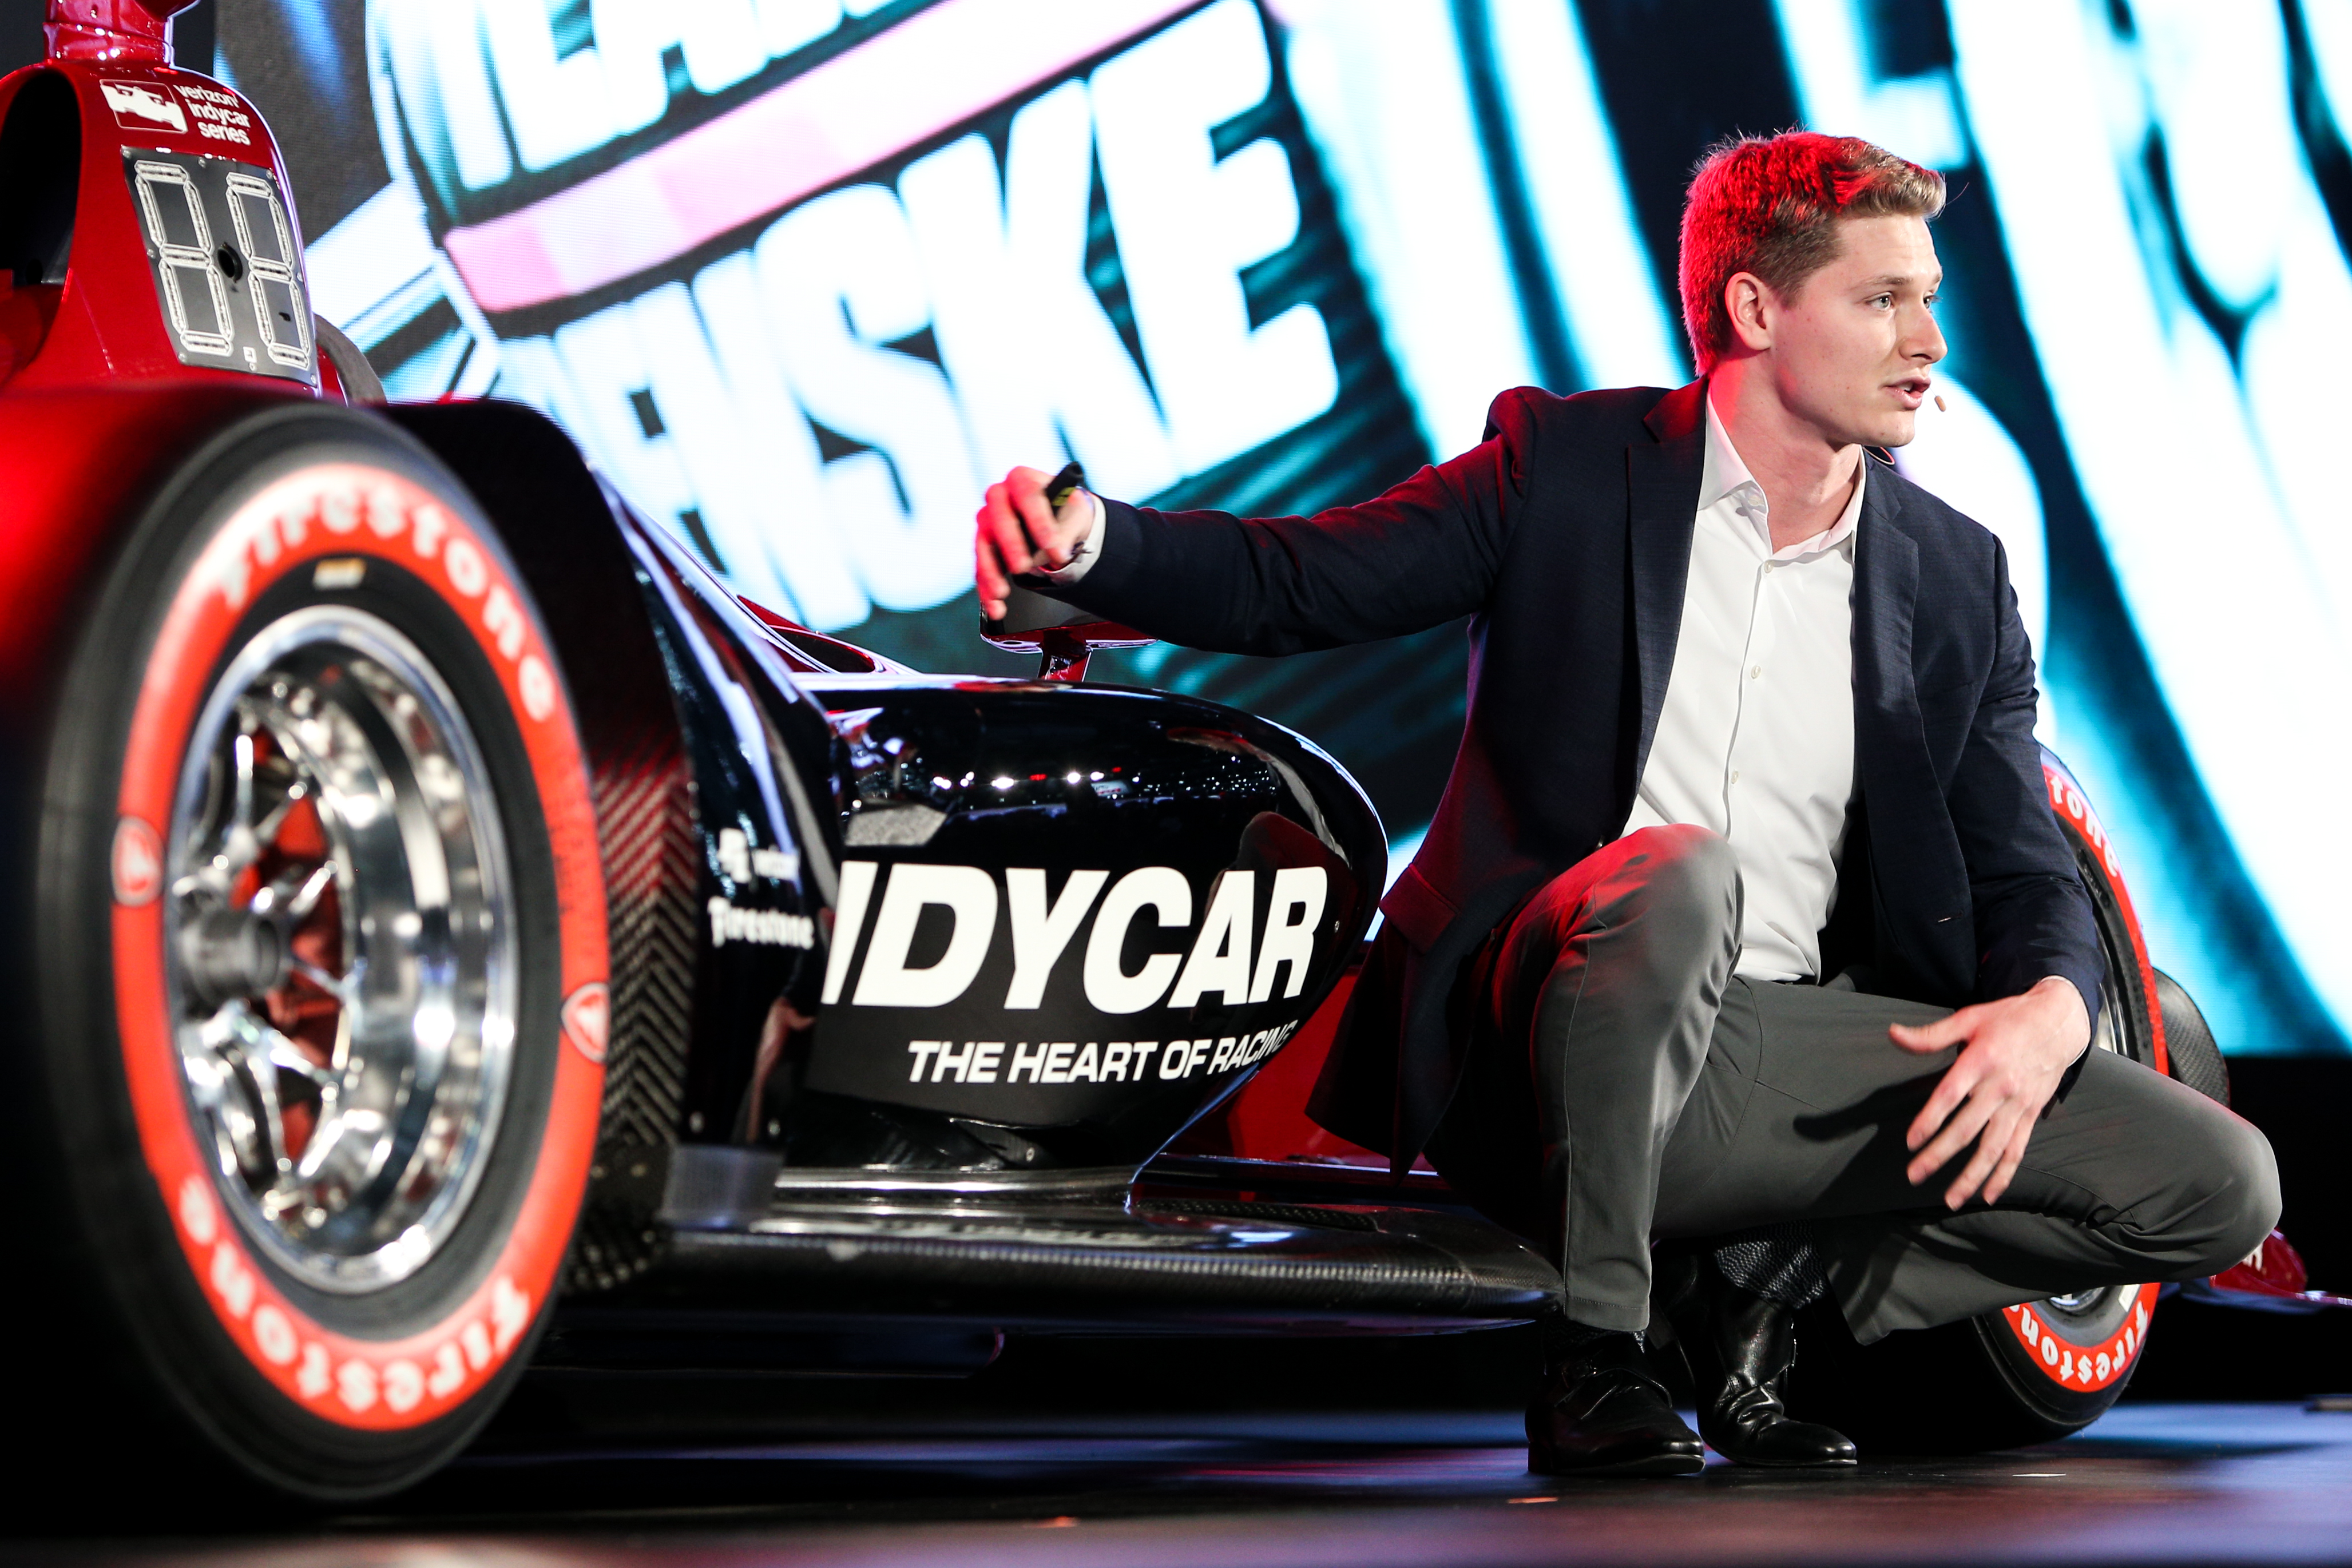 Defending champion Josef Newgarden offers insight on 2018 IndyCar performance